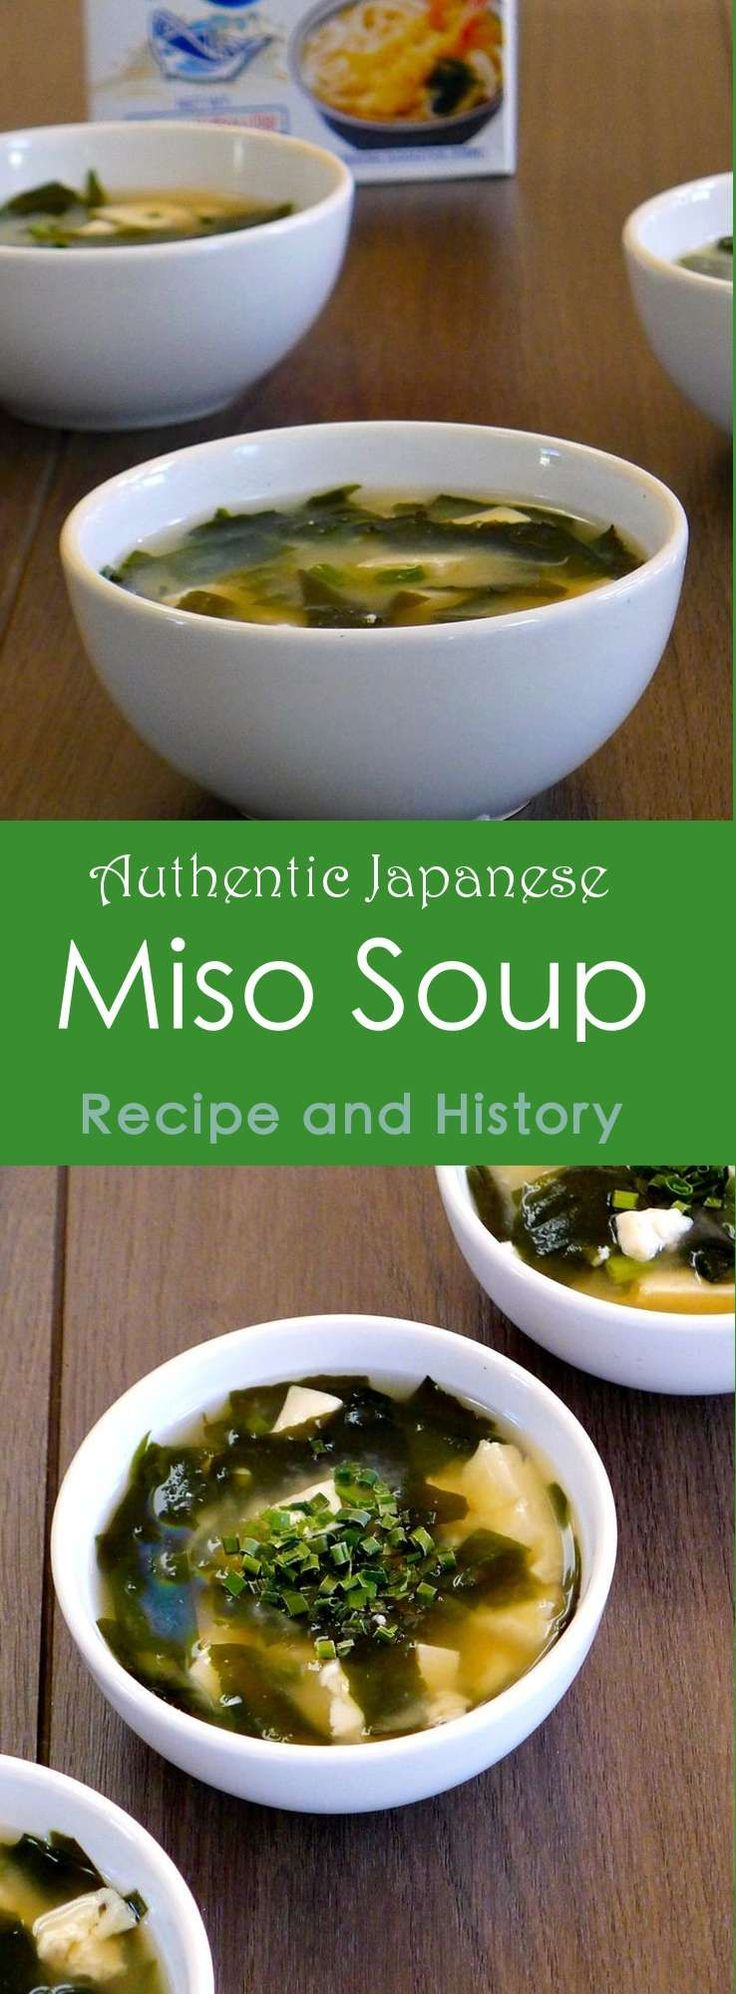 Miso Soup is made with miso, a traditional food in Japan and China that can be found in the form of a very strong-flavored salty umami paste.